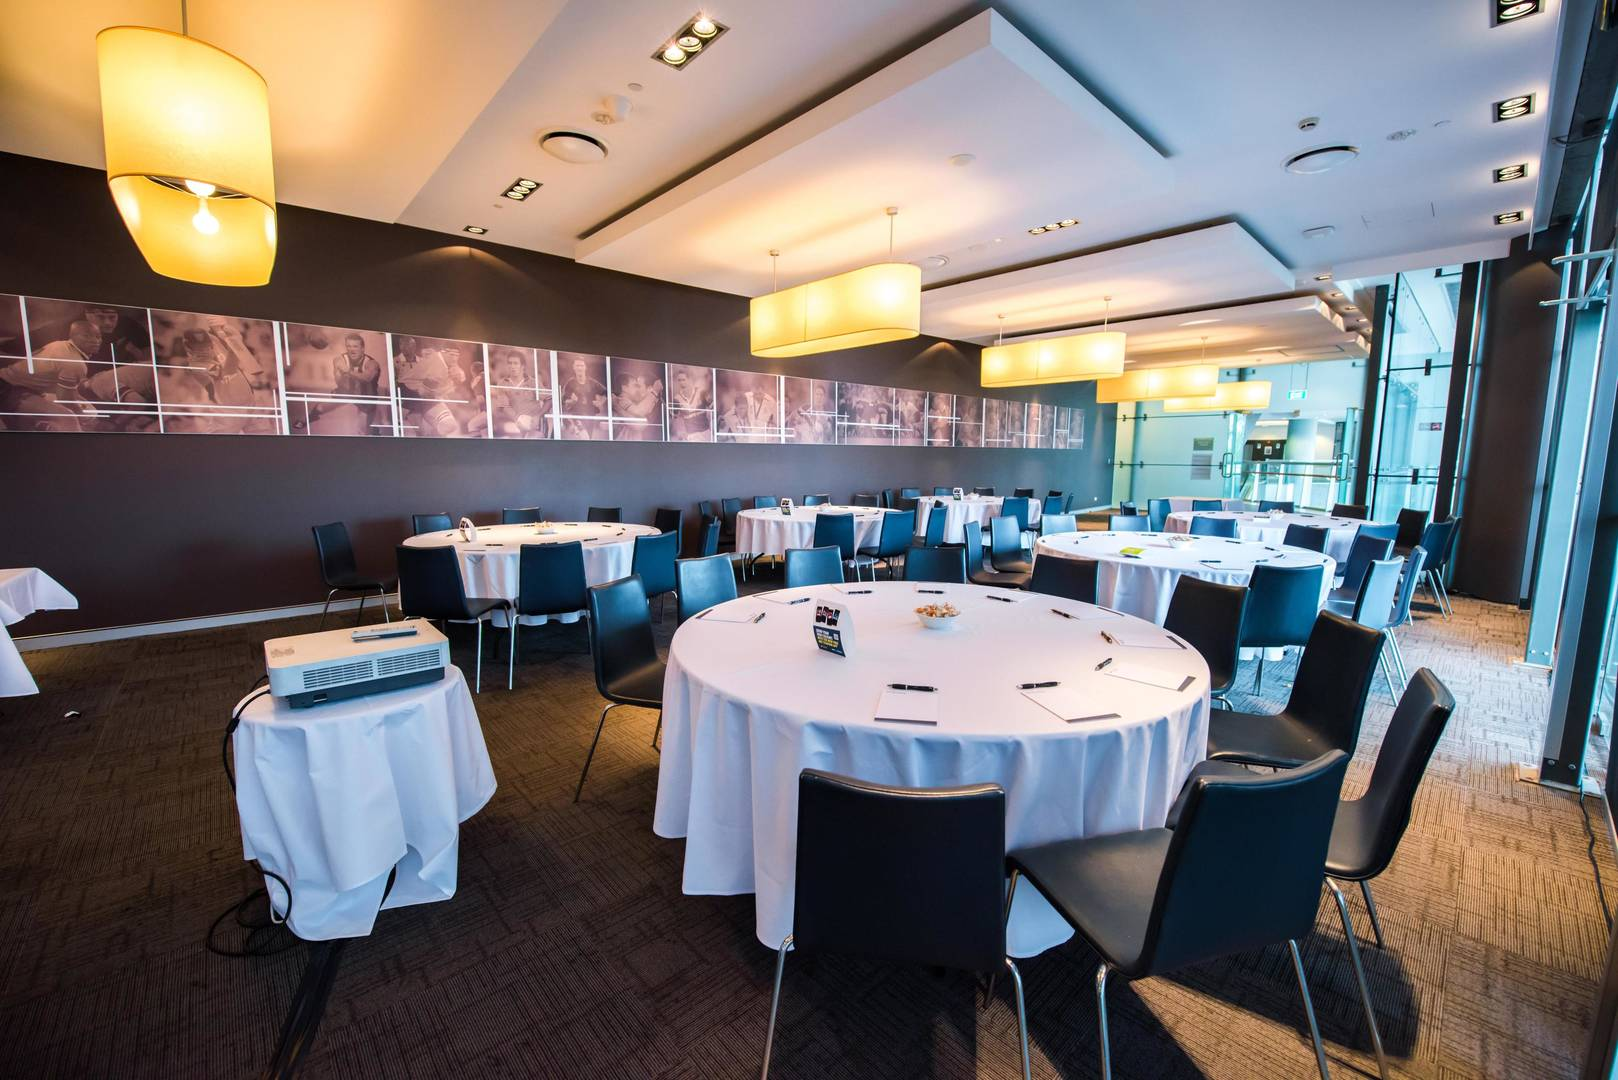 Sydney Olympic Park - Captains Room - Photography courtesy of ANZ Stadium